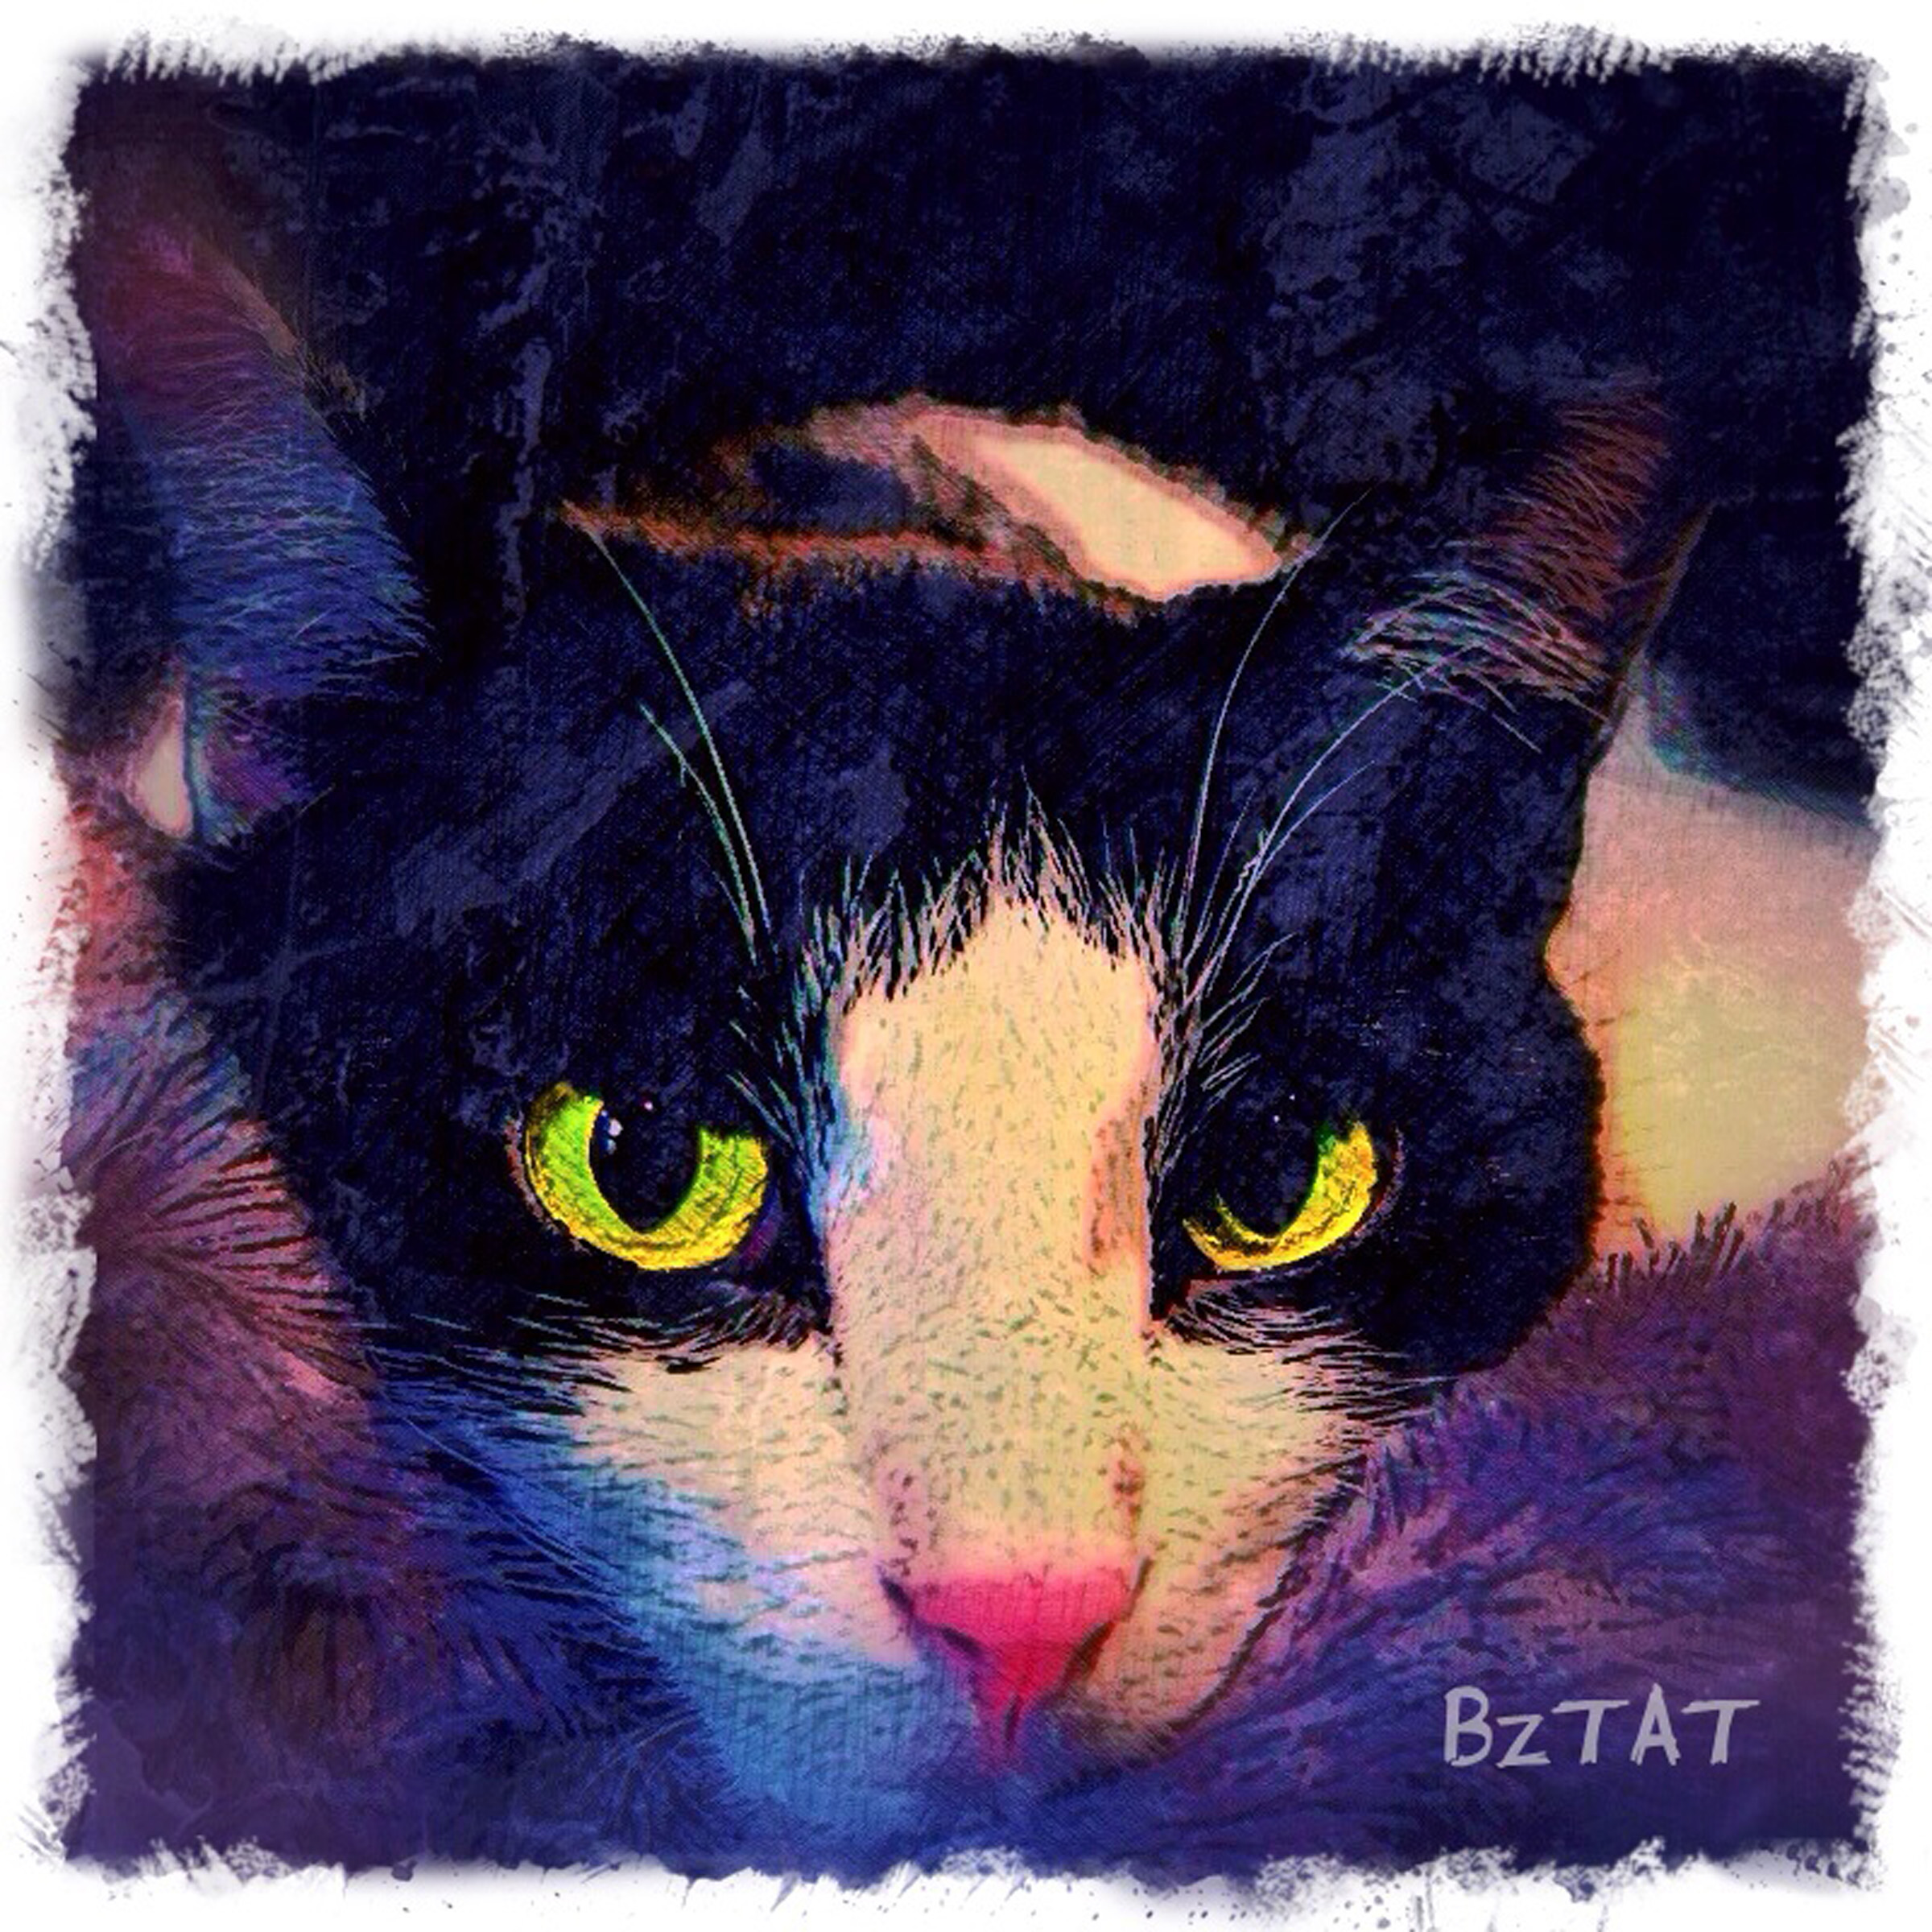 3-Digital-pet-portrait-cat-art-calendar-BZTAT